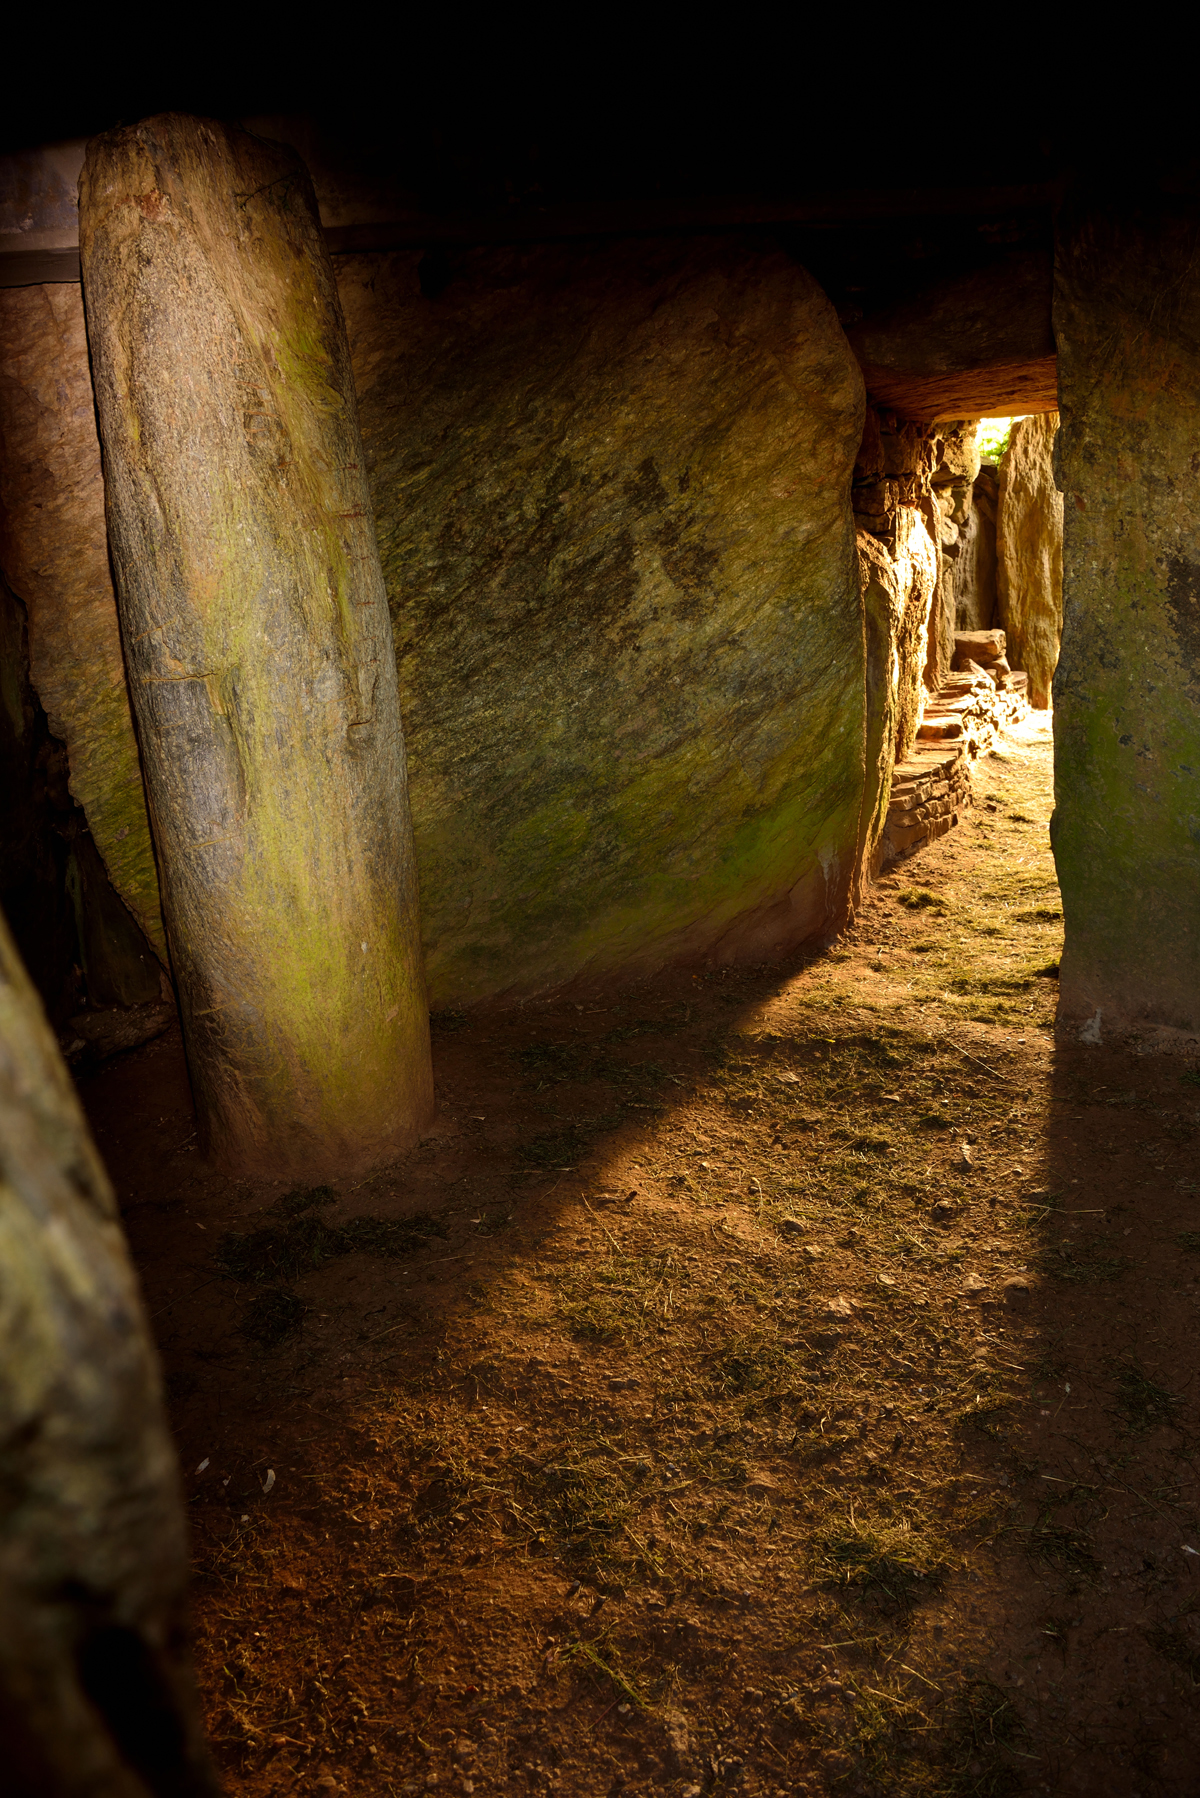 Bryn Celli Ddu summer solstice. Wales. Archaeology